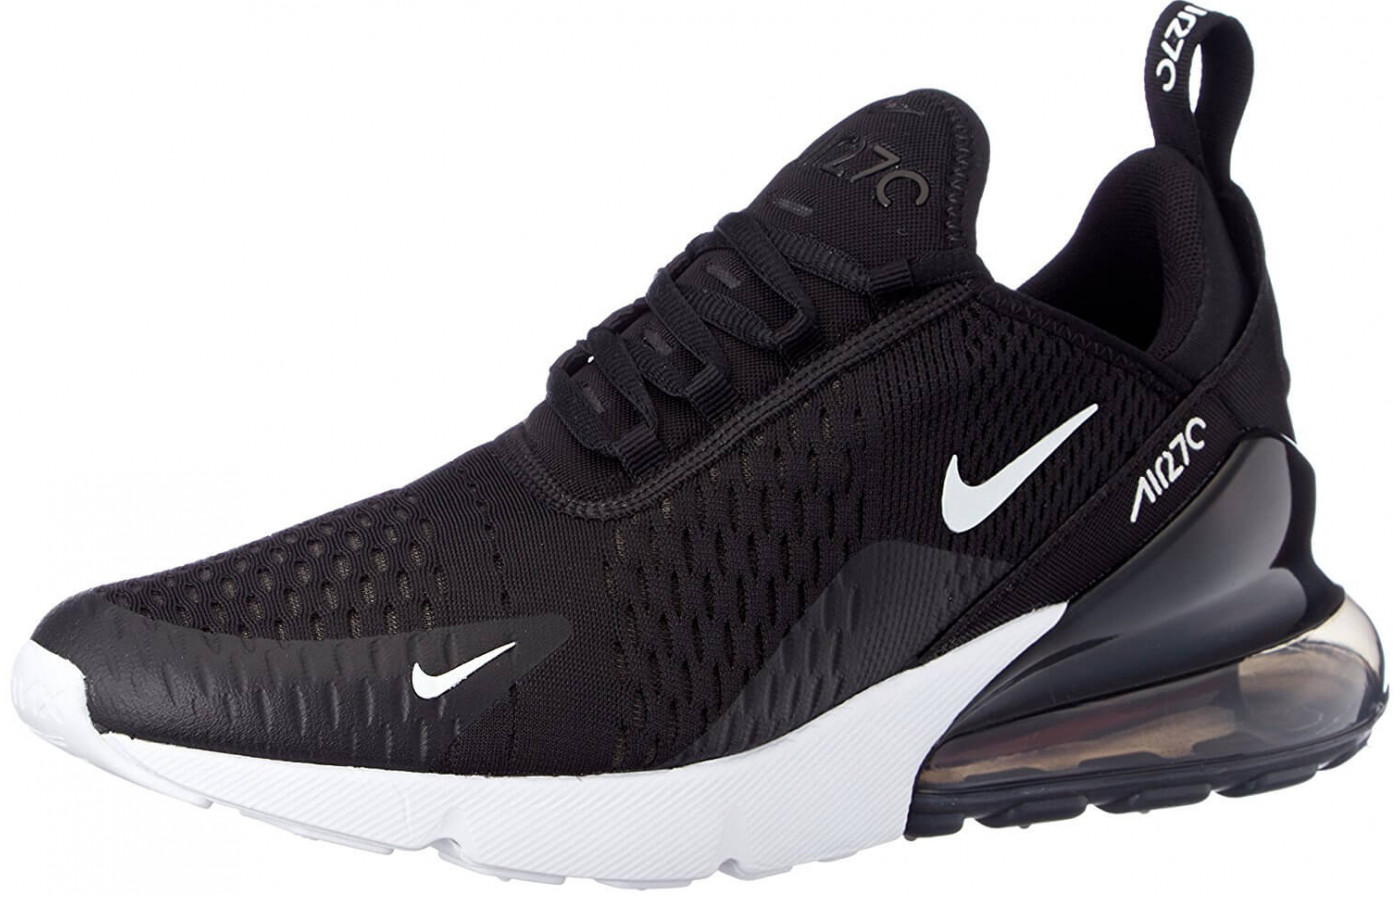 promo code d9ac5 9a328 Nike Air Max 270. Mesh upper and 270 degrees of Air ...